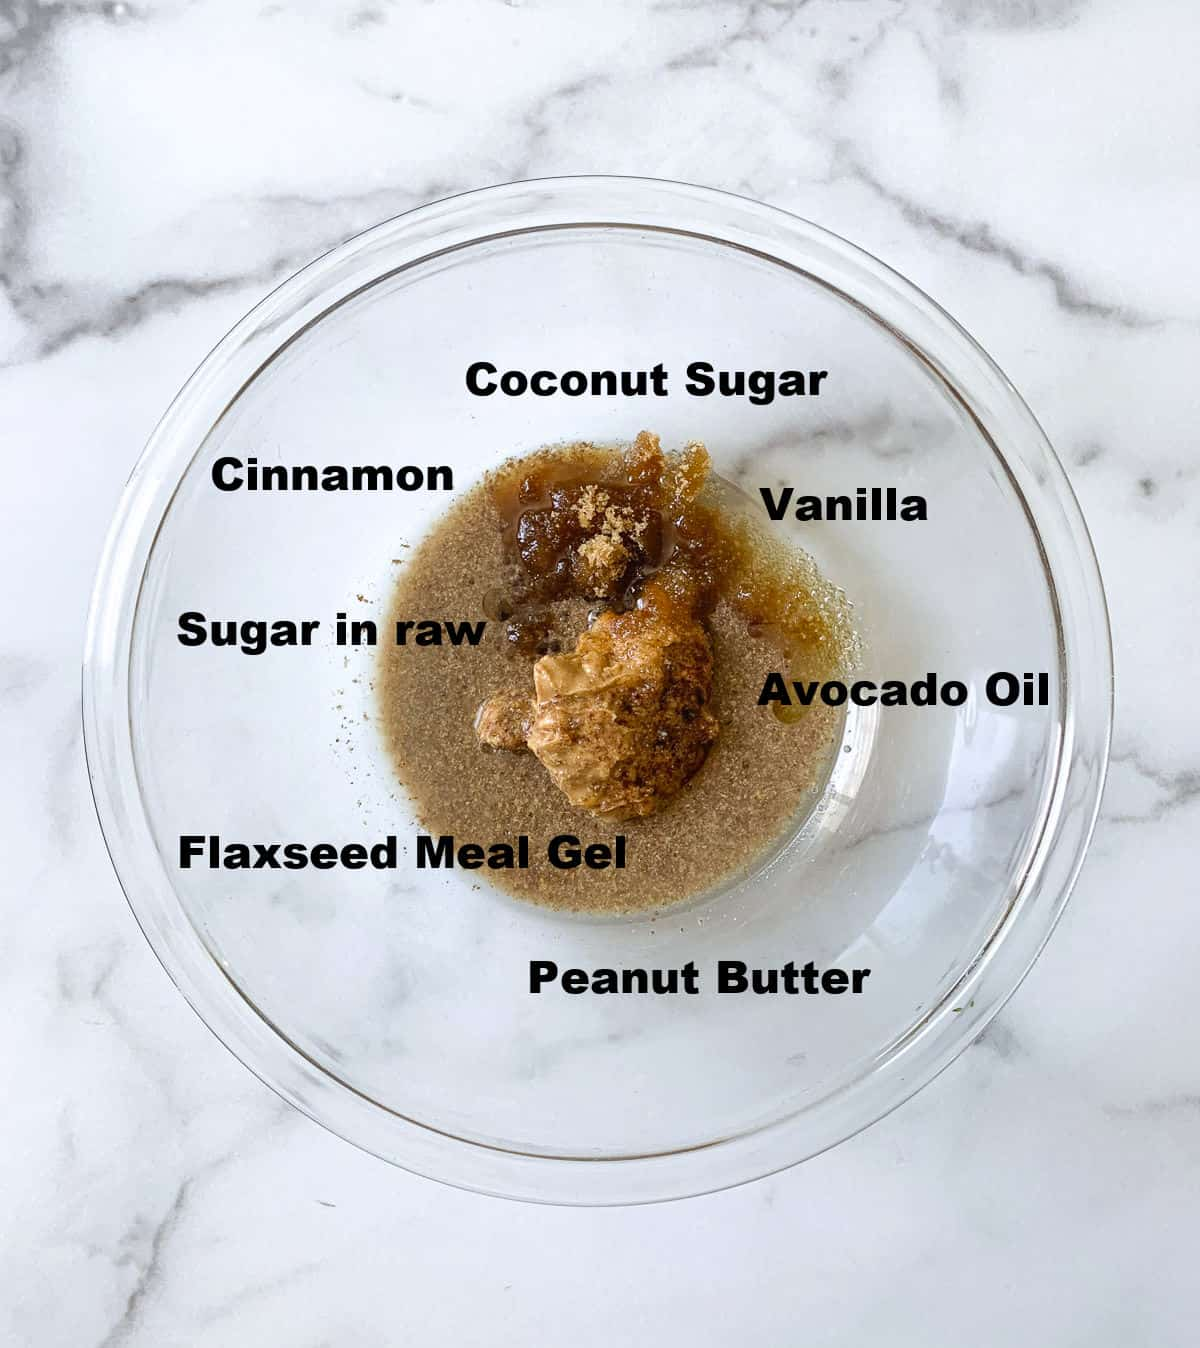 All ingredients to cream with peanut butter in a bowl